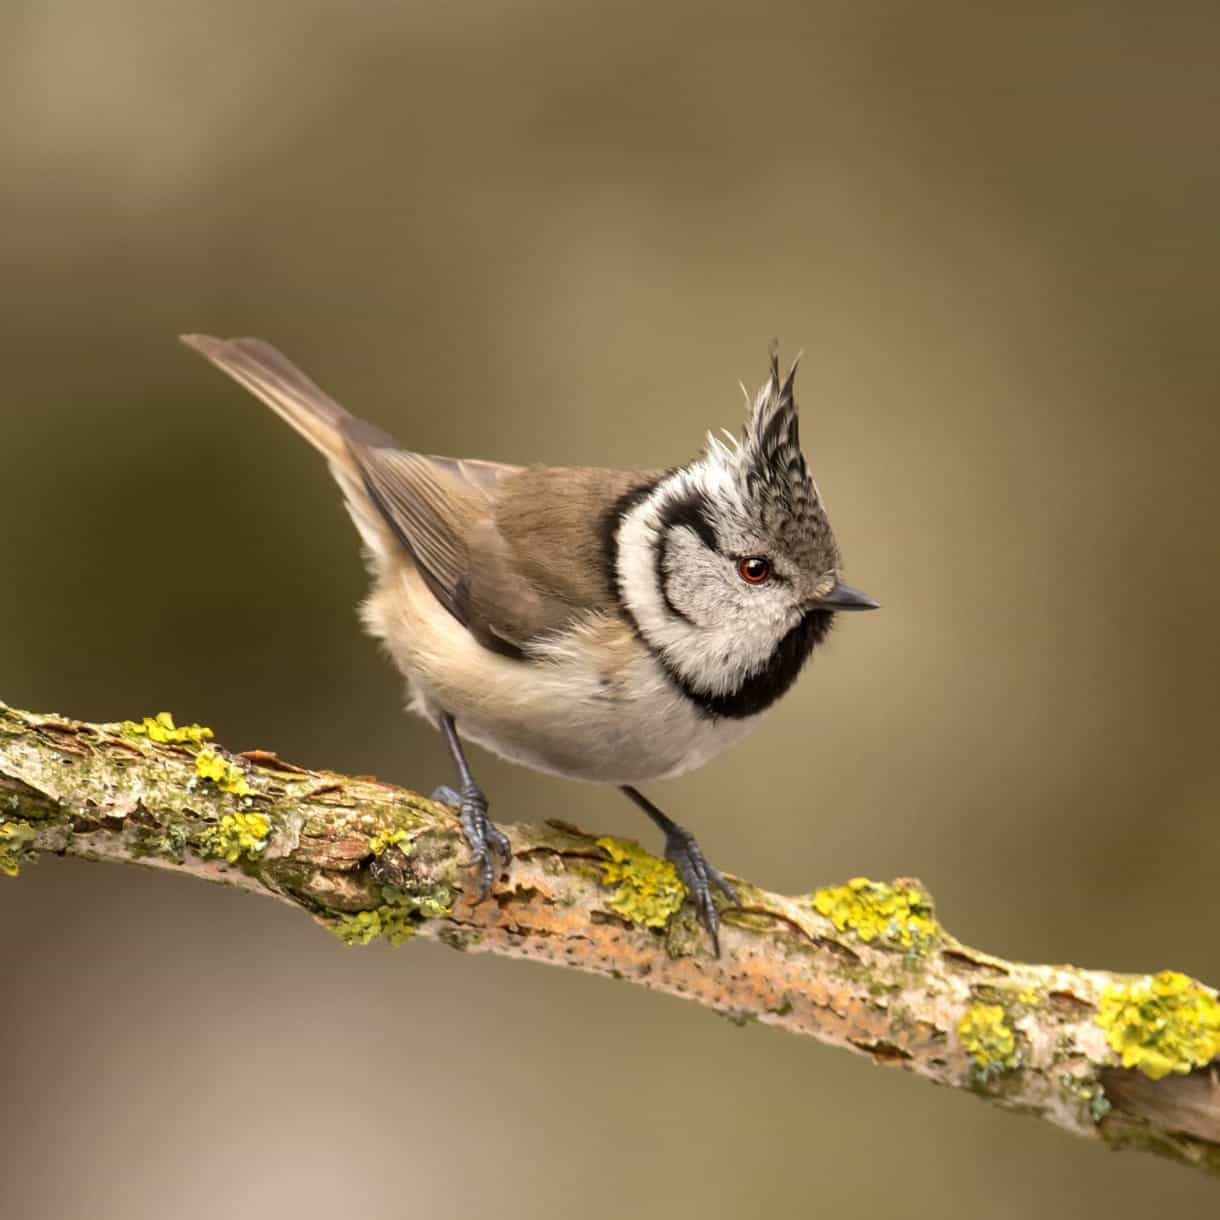 What does a tit look like? 53